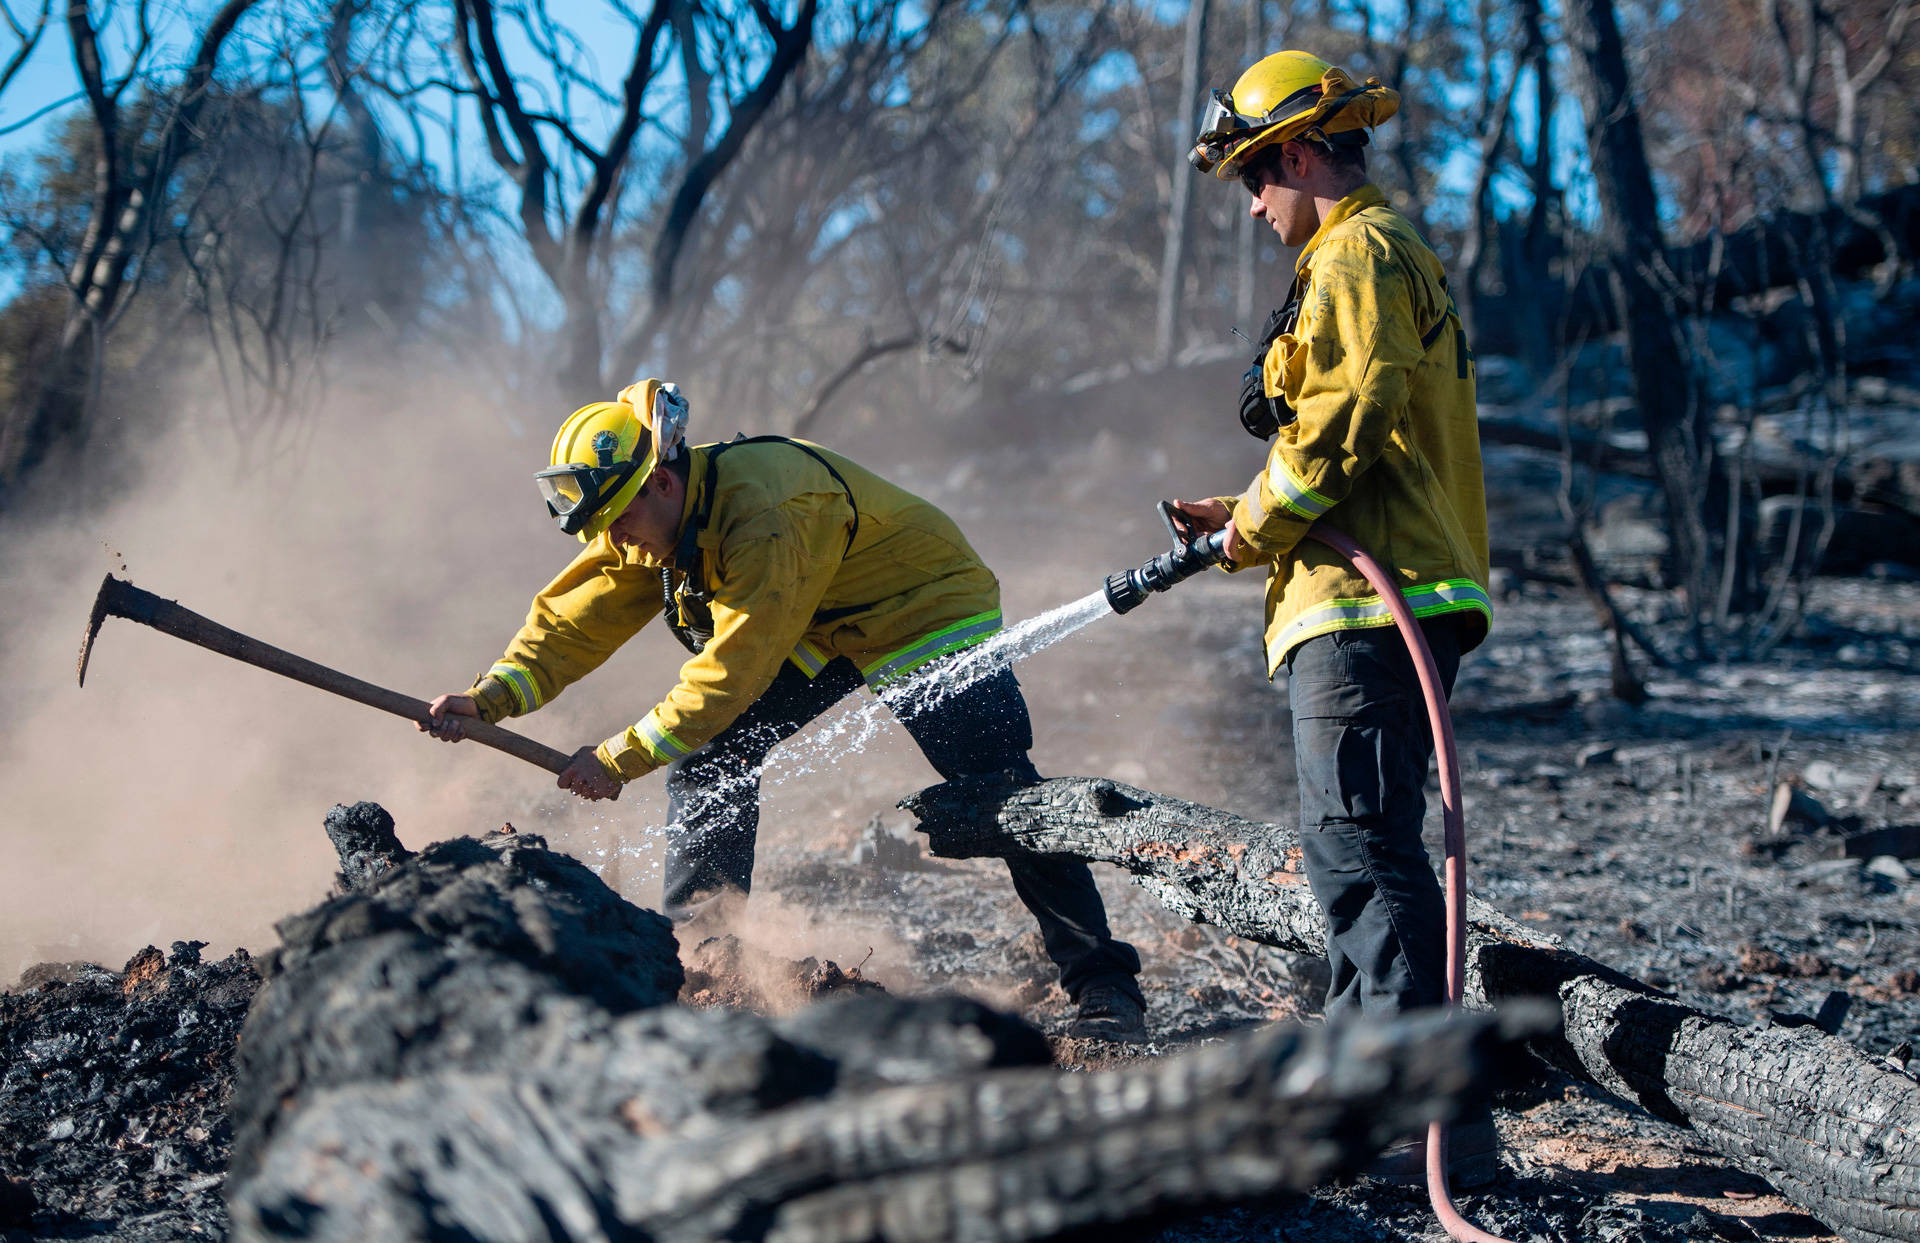 Bryce Briare (R) and Mike Manibusan (L) with the Marin County Fire Deptartment work on a smoldering hot spot as firefighters continue to build toward containment of the Wall Fire in Oroville on July 10, 2017.  JOSH EDELSON/AFP/Getty Images